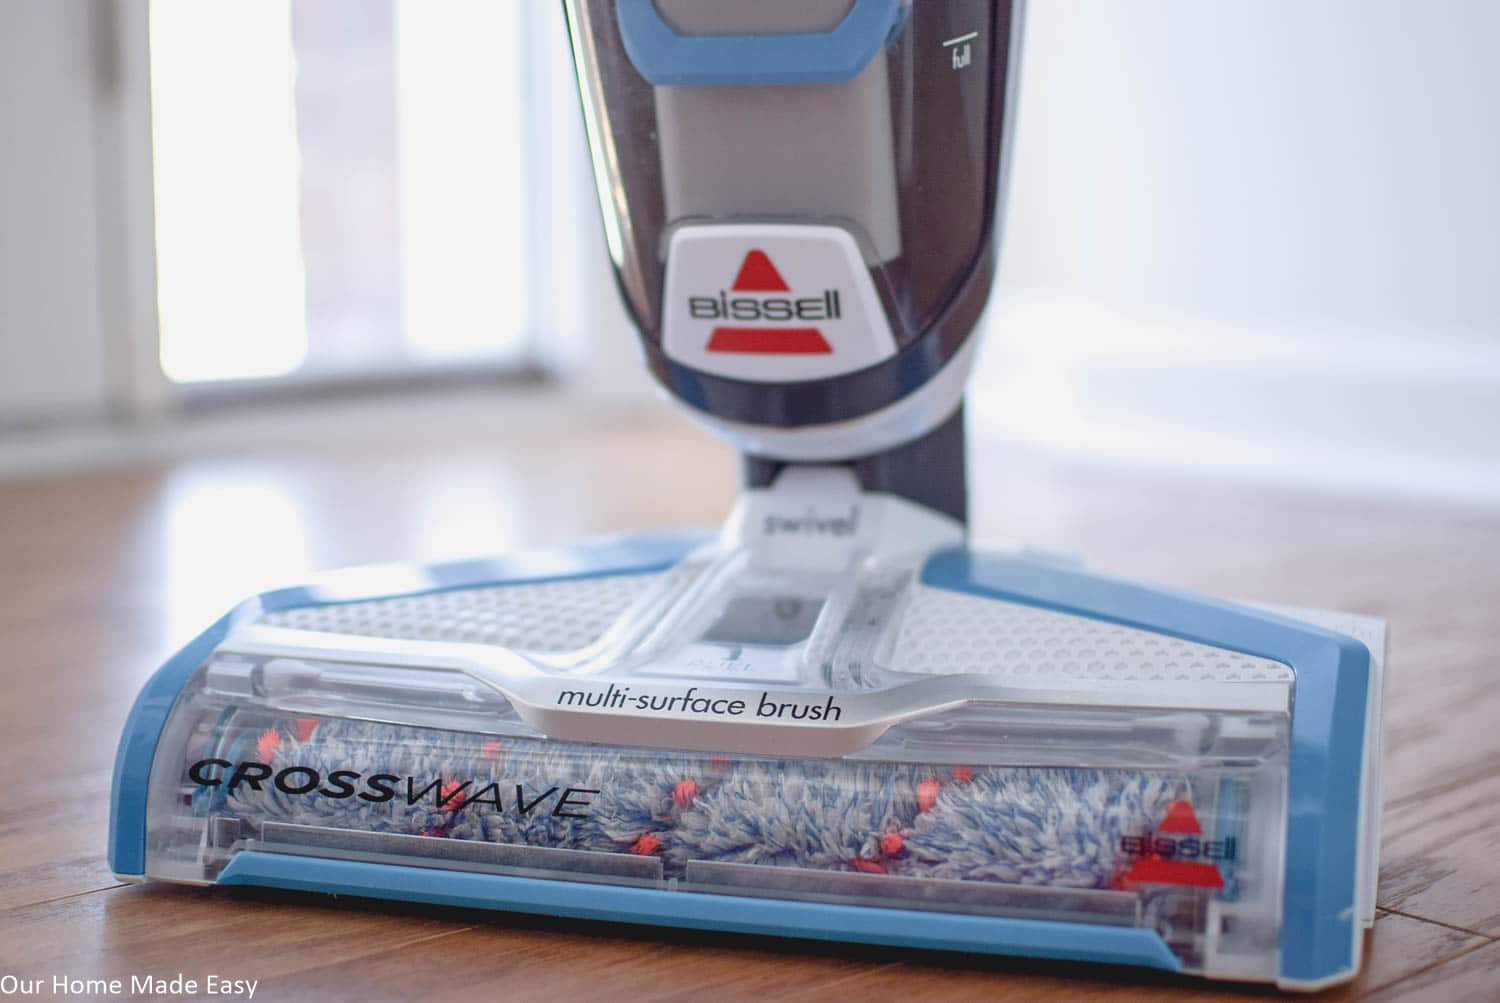 The Bissell CrossWave is a great way to clean your hardwood floors and rugs with just one appliance. it's simple to use and does the job well!